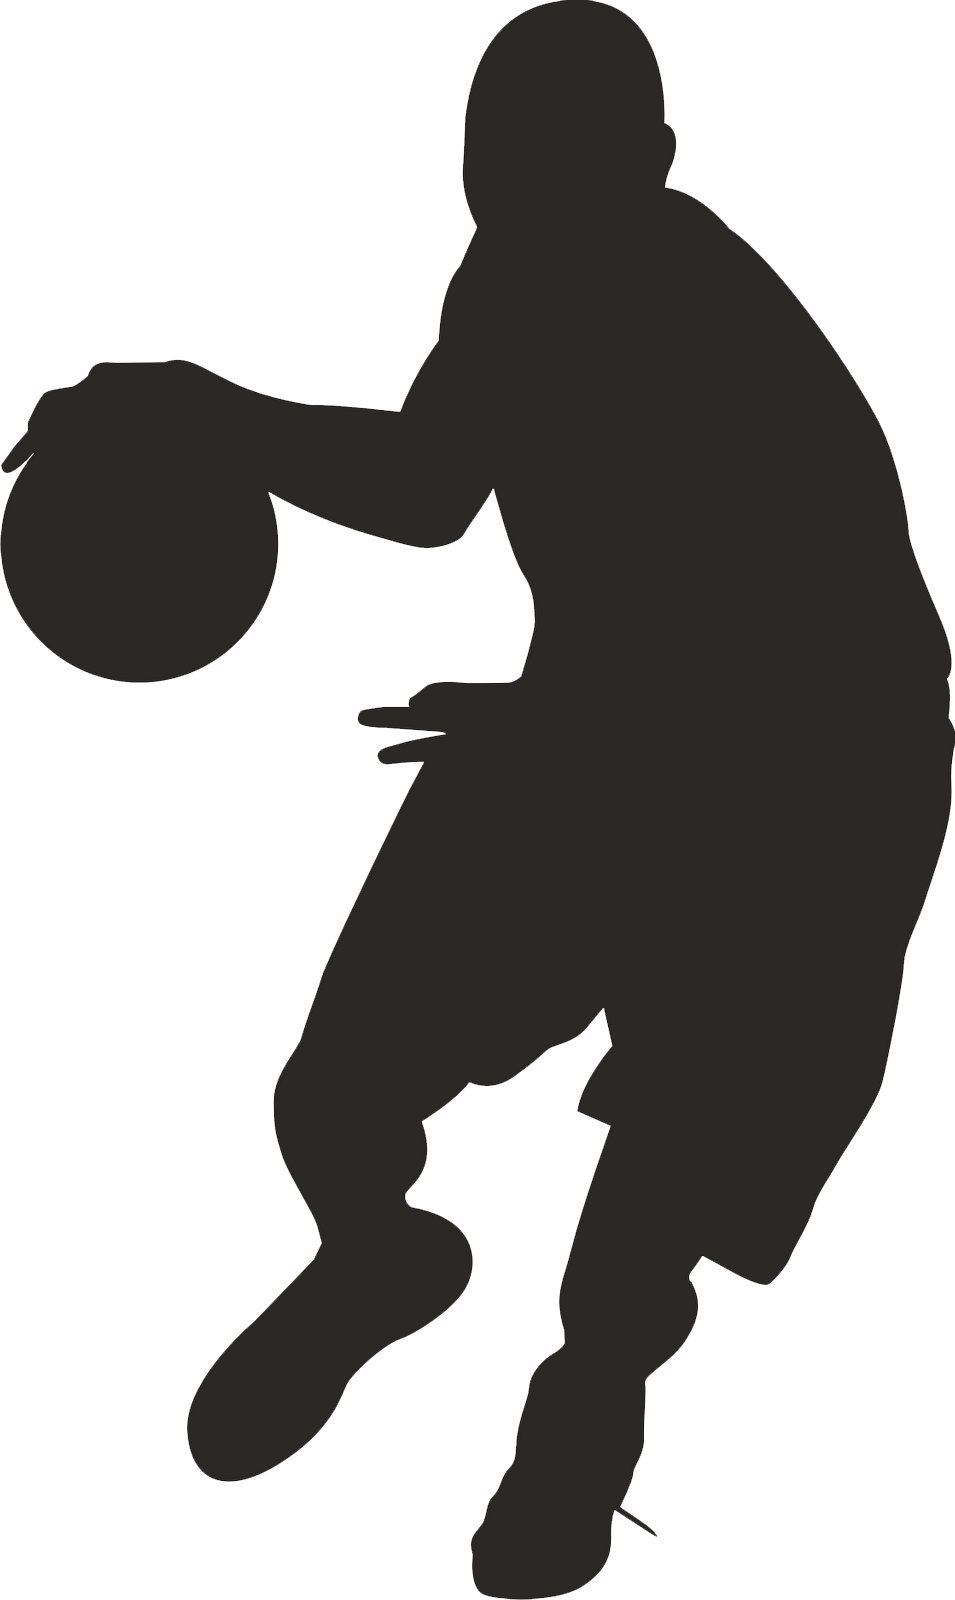 Girl shooting basketball silhouette clipart image transparent library Silhouette Basketball Players at GetDrawings.com | Free for personal ... image transparent library